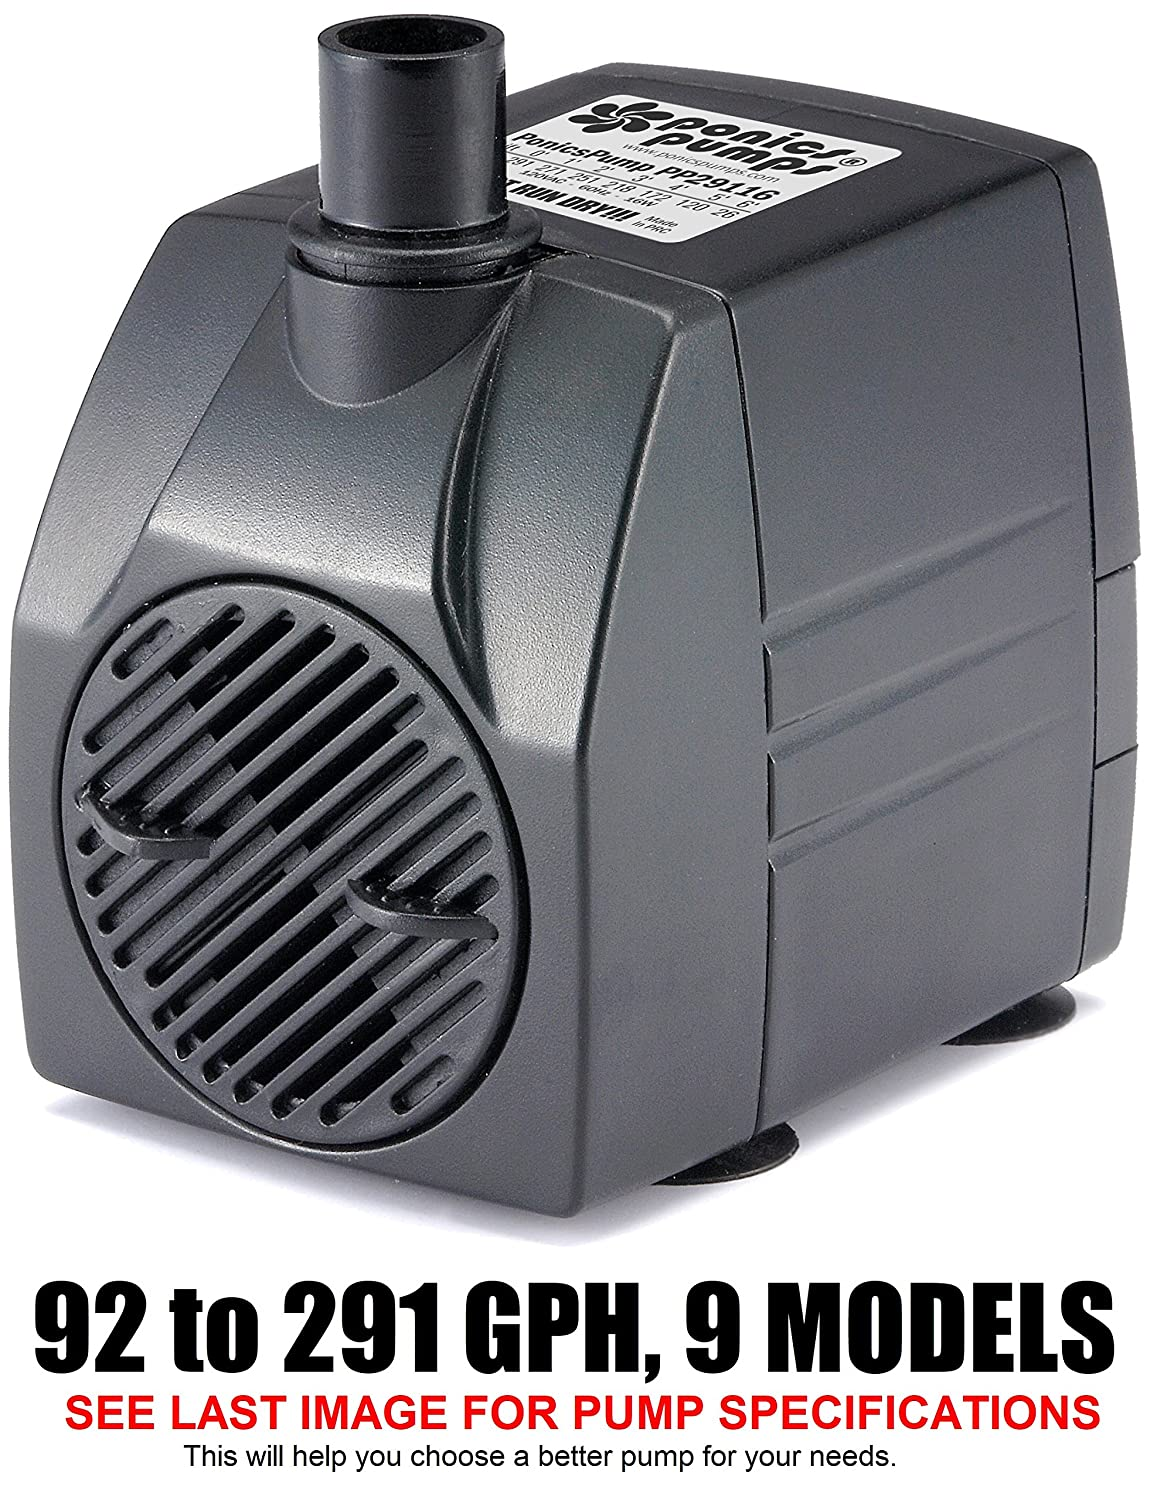 291 GPH   16' Cord PonicsPumps PP29116  291 GPH Submersible Pump with 16' Cord 16W. for Hydroponics, Aquaponics, Fountains, Ponds, Statuary, Aquariums & more. Comes with 1 year limited warranty.